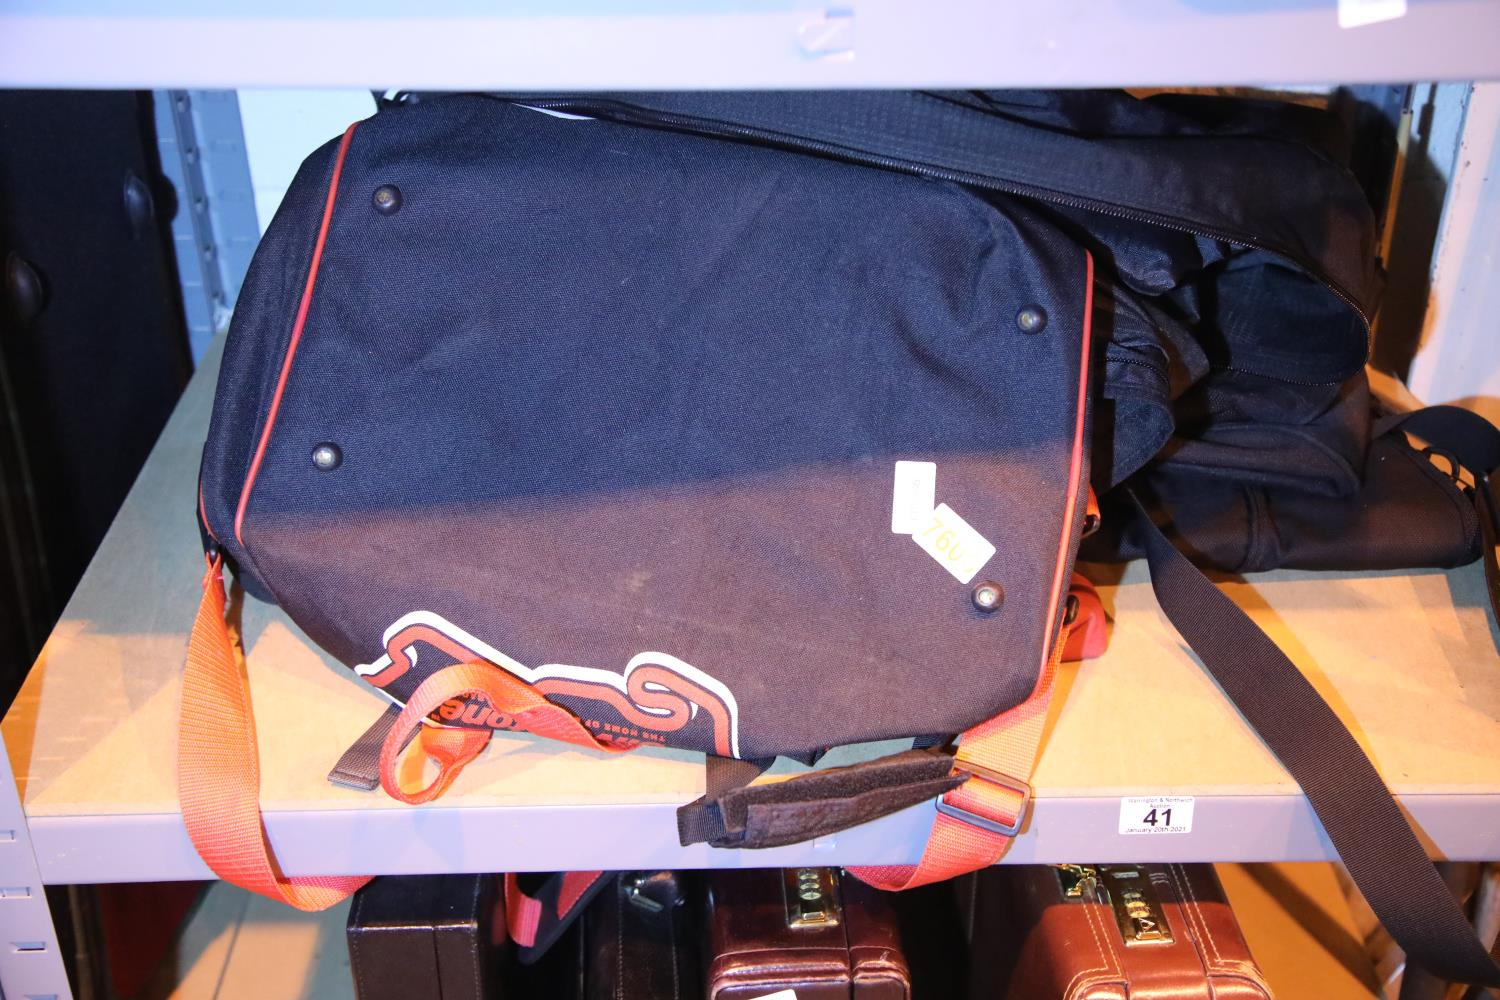 Six canvas holdalls. Not available for in-house P&P, contact Paul O'Hea at Mailboxes on 01925 659133